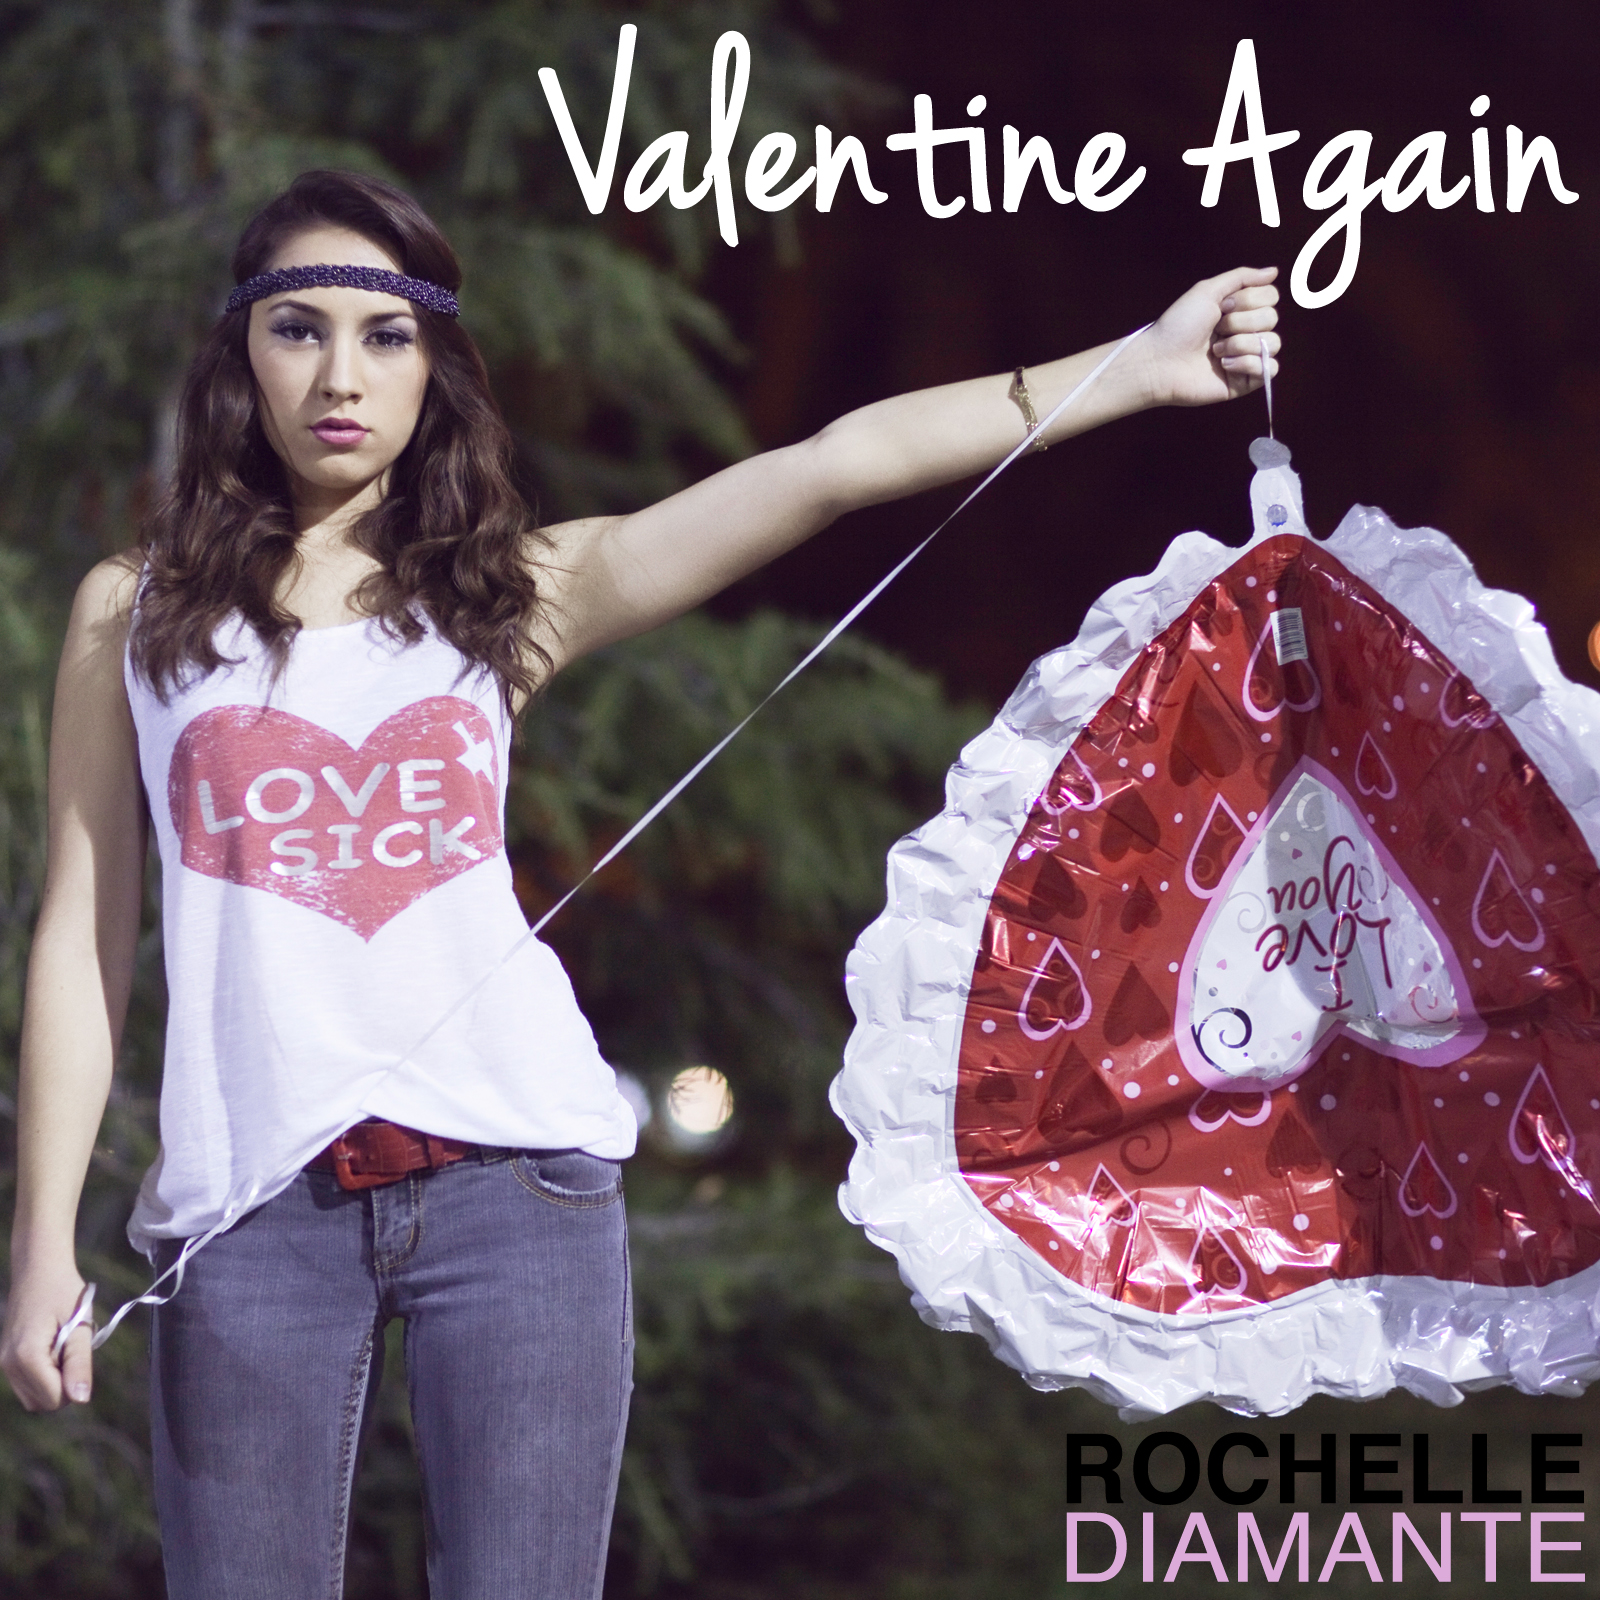 Rochelle Diamante - Valentine Again